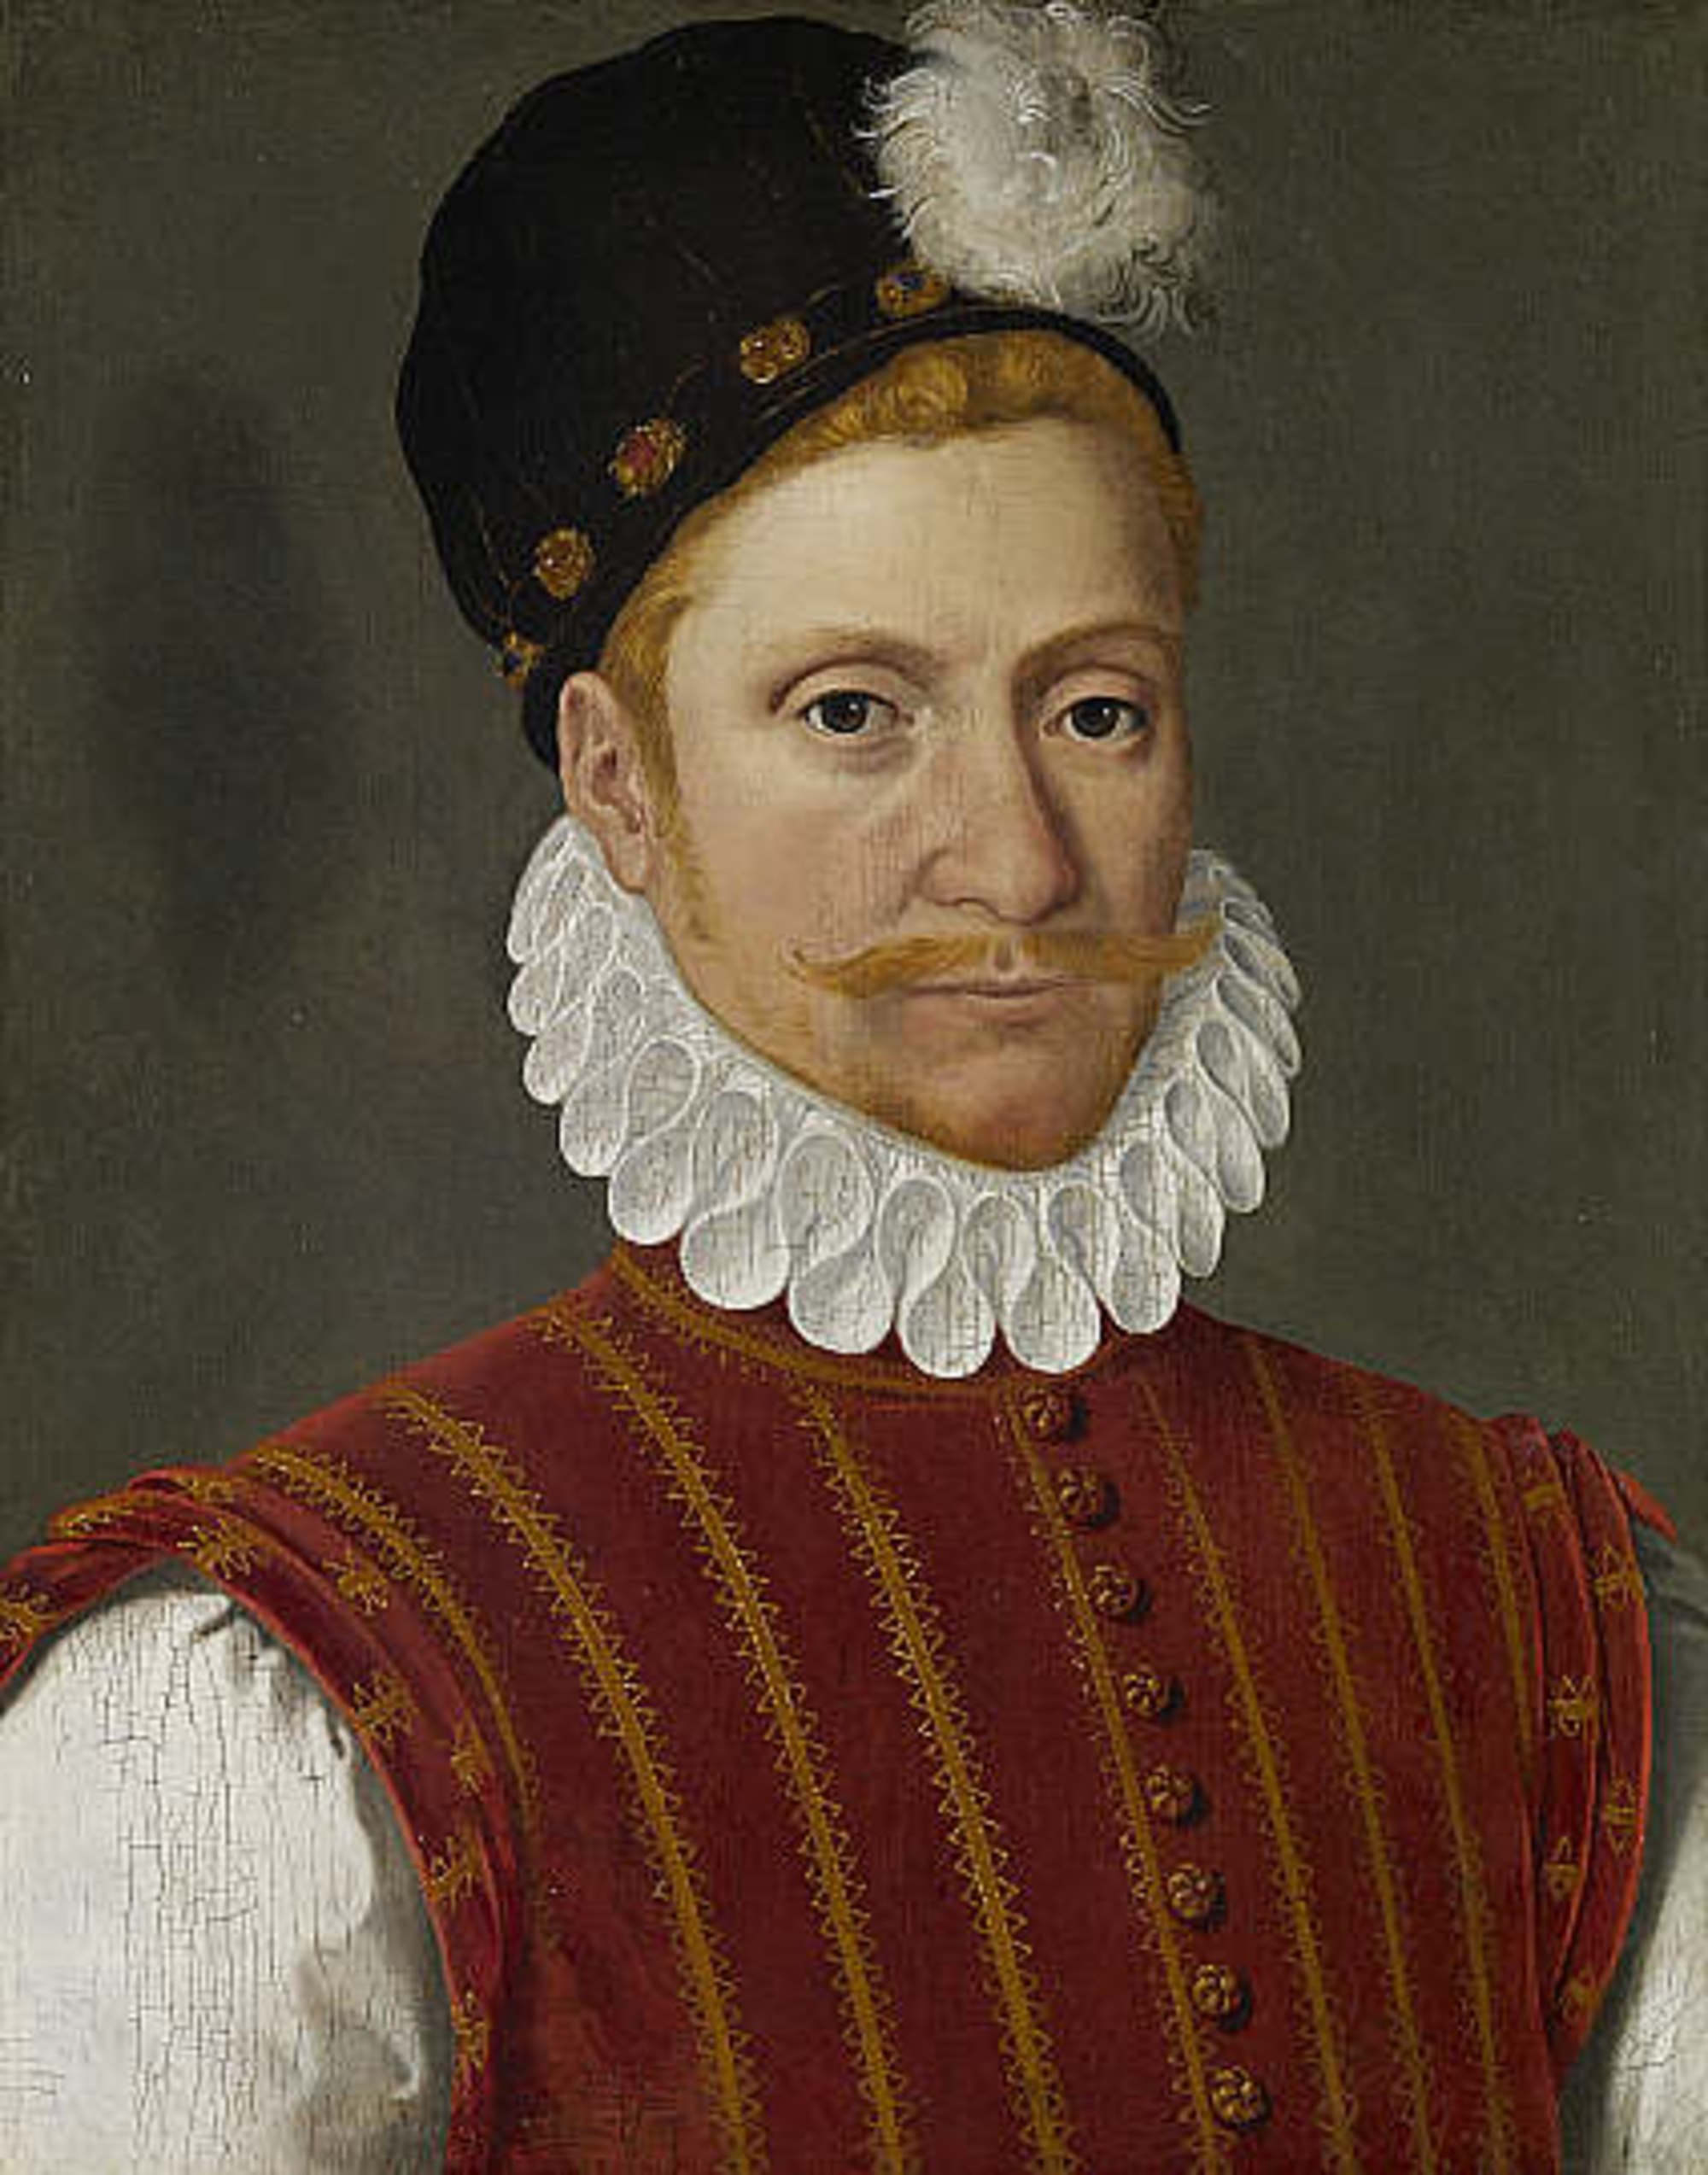 William-Kirkcaldy-of-Grange.jpg